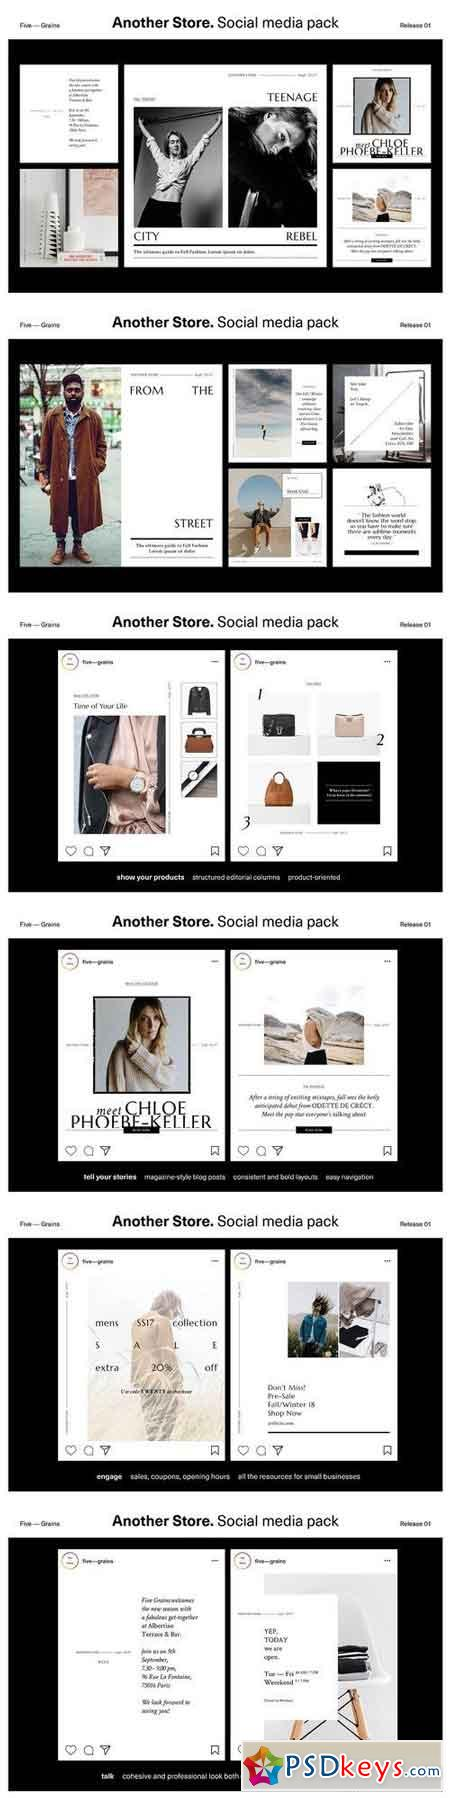 Another Store Social media pack 1863041